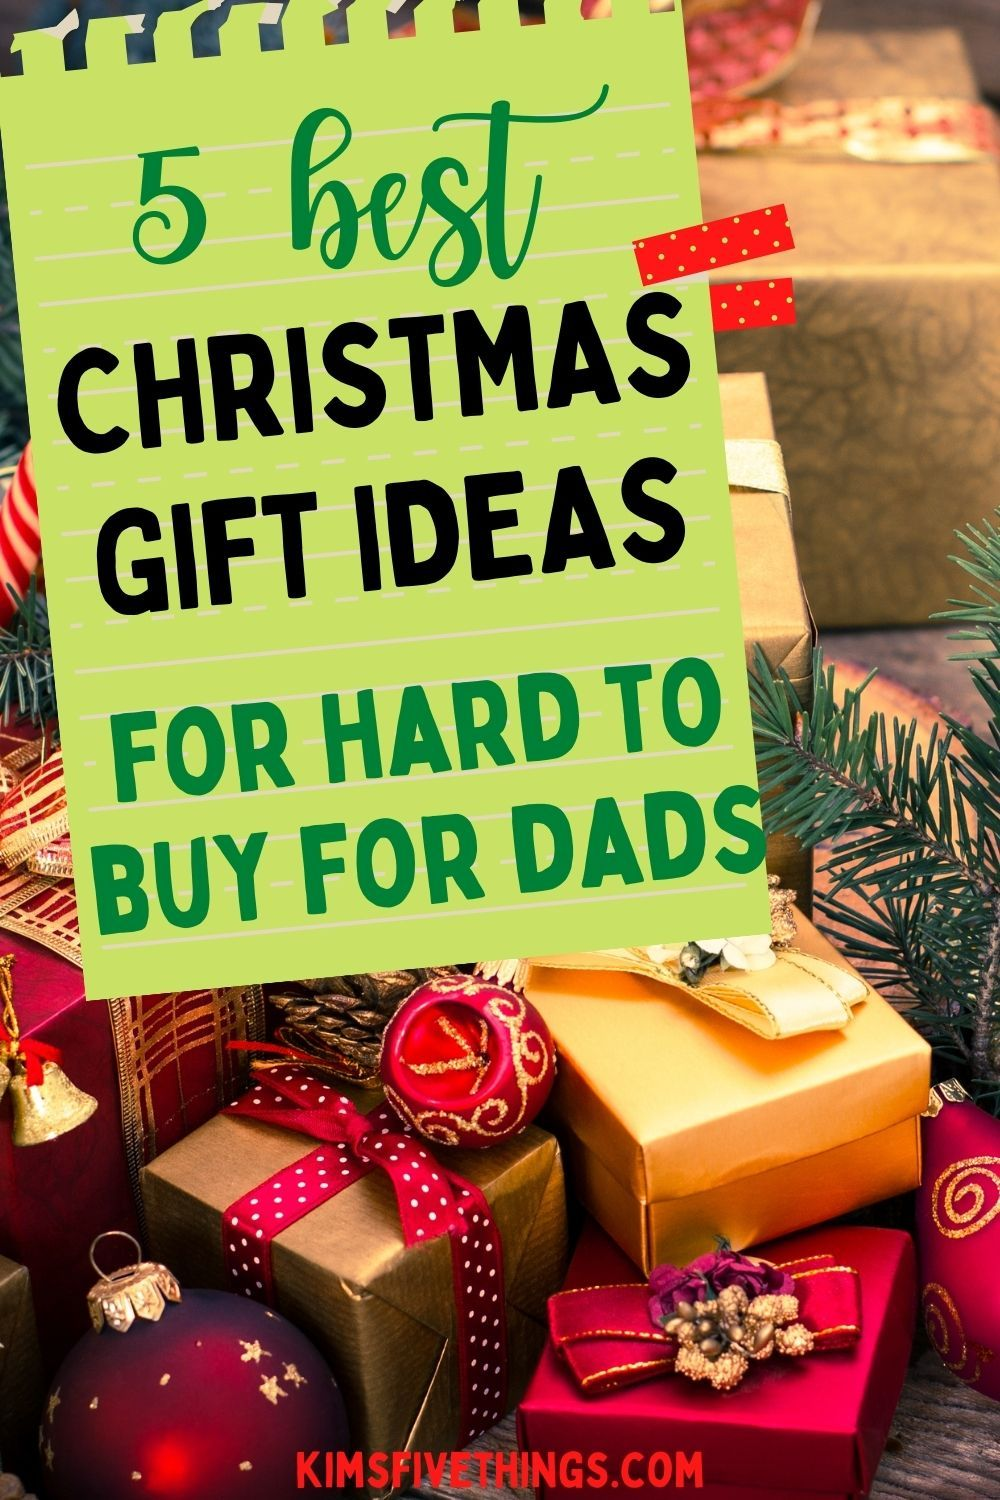 Top 5 Christmas Gifts For Your Dad Meaningful Gifts For Dad Kims Home Ideas In 2020 Top 5 Christmas Gifts Christmas Gifts Christmas Gift For Dad